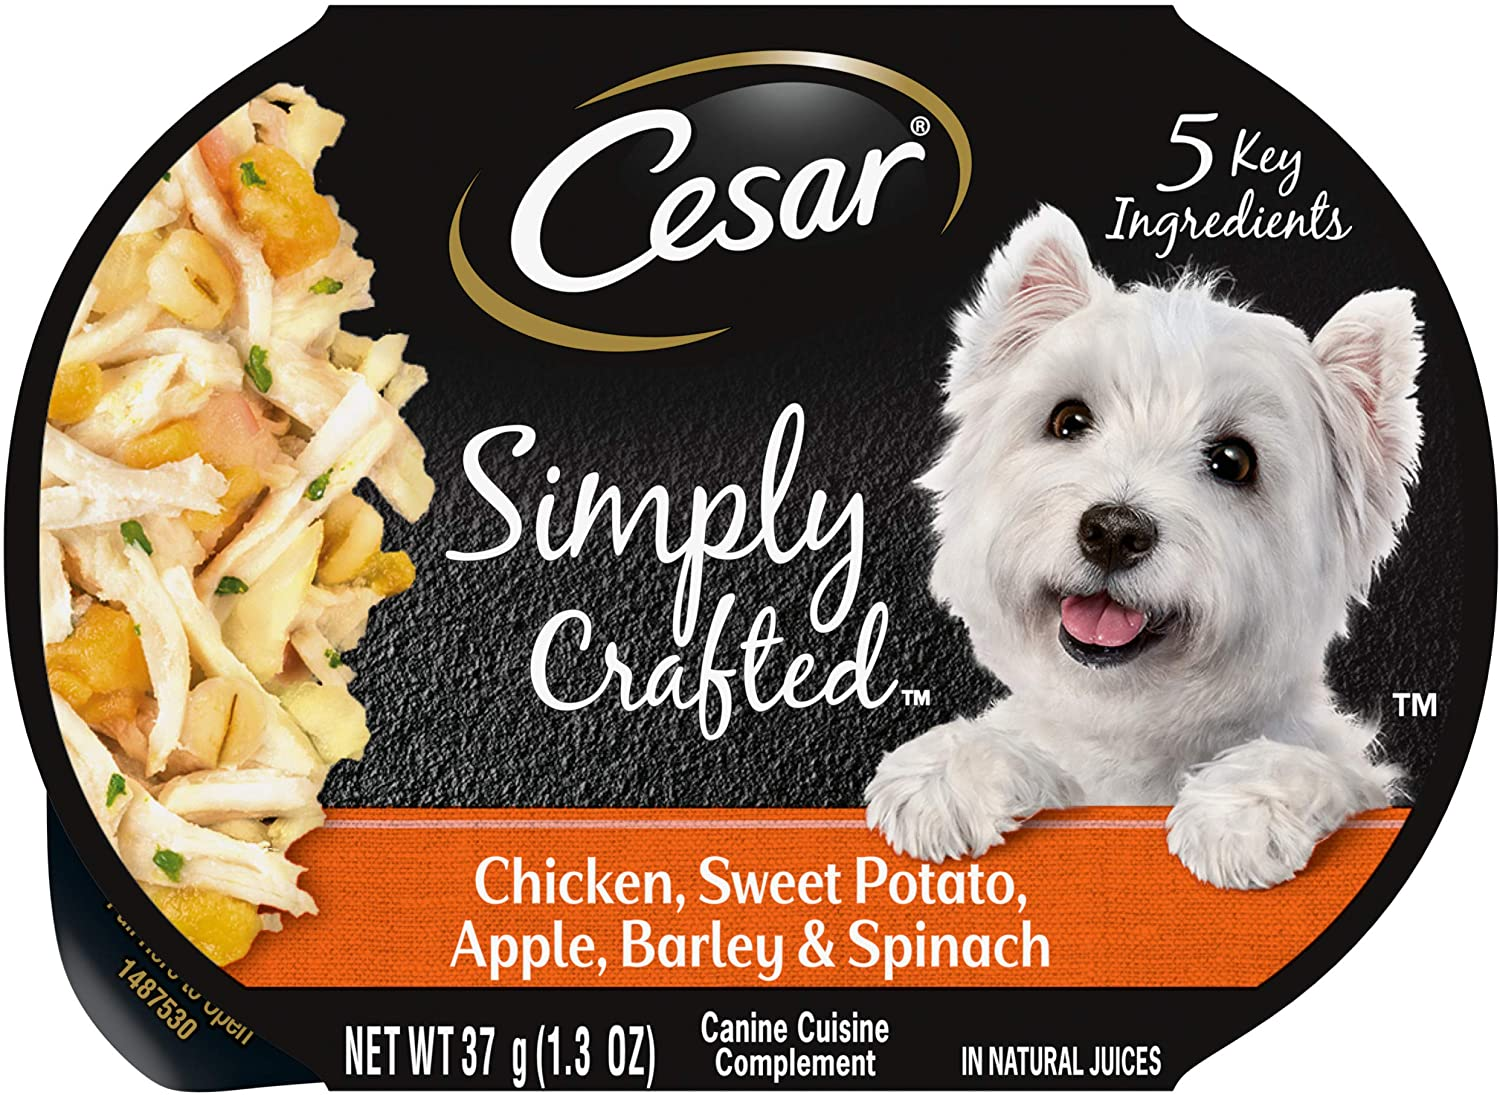 Cesar Simply Crafted Meal Topper Wet of Dog Food Pack New 1 year warranty sales 10